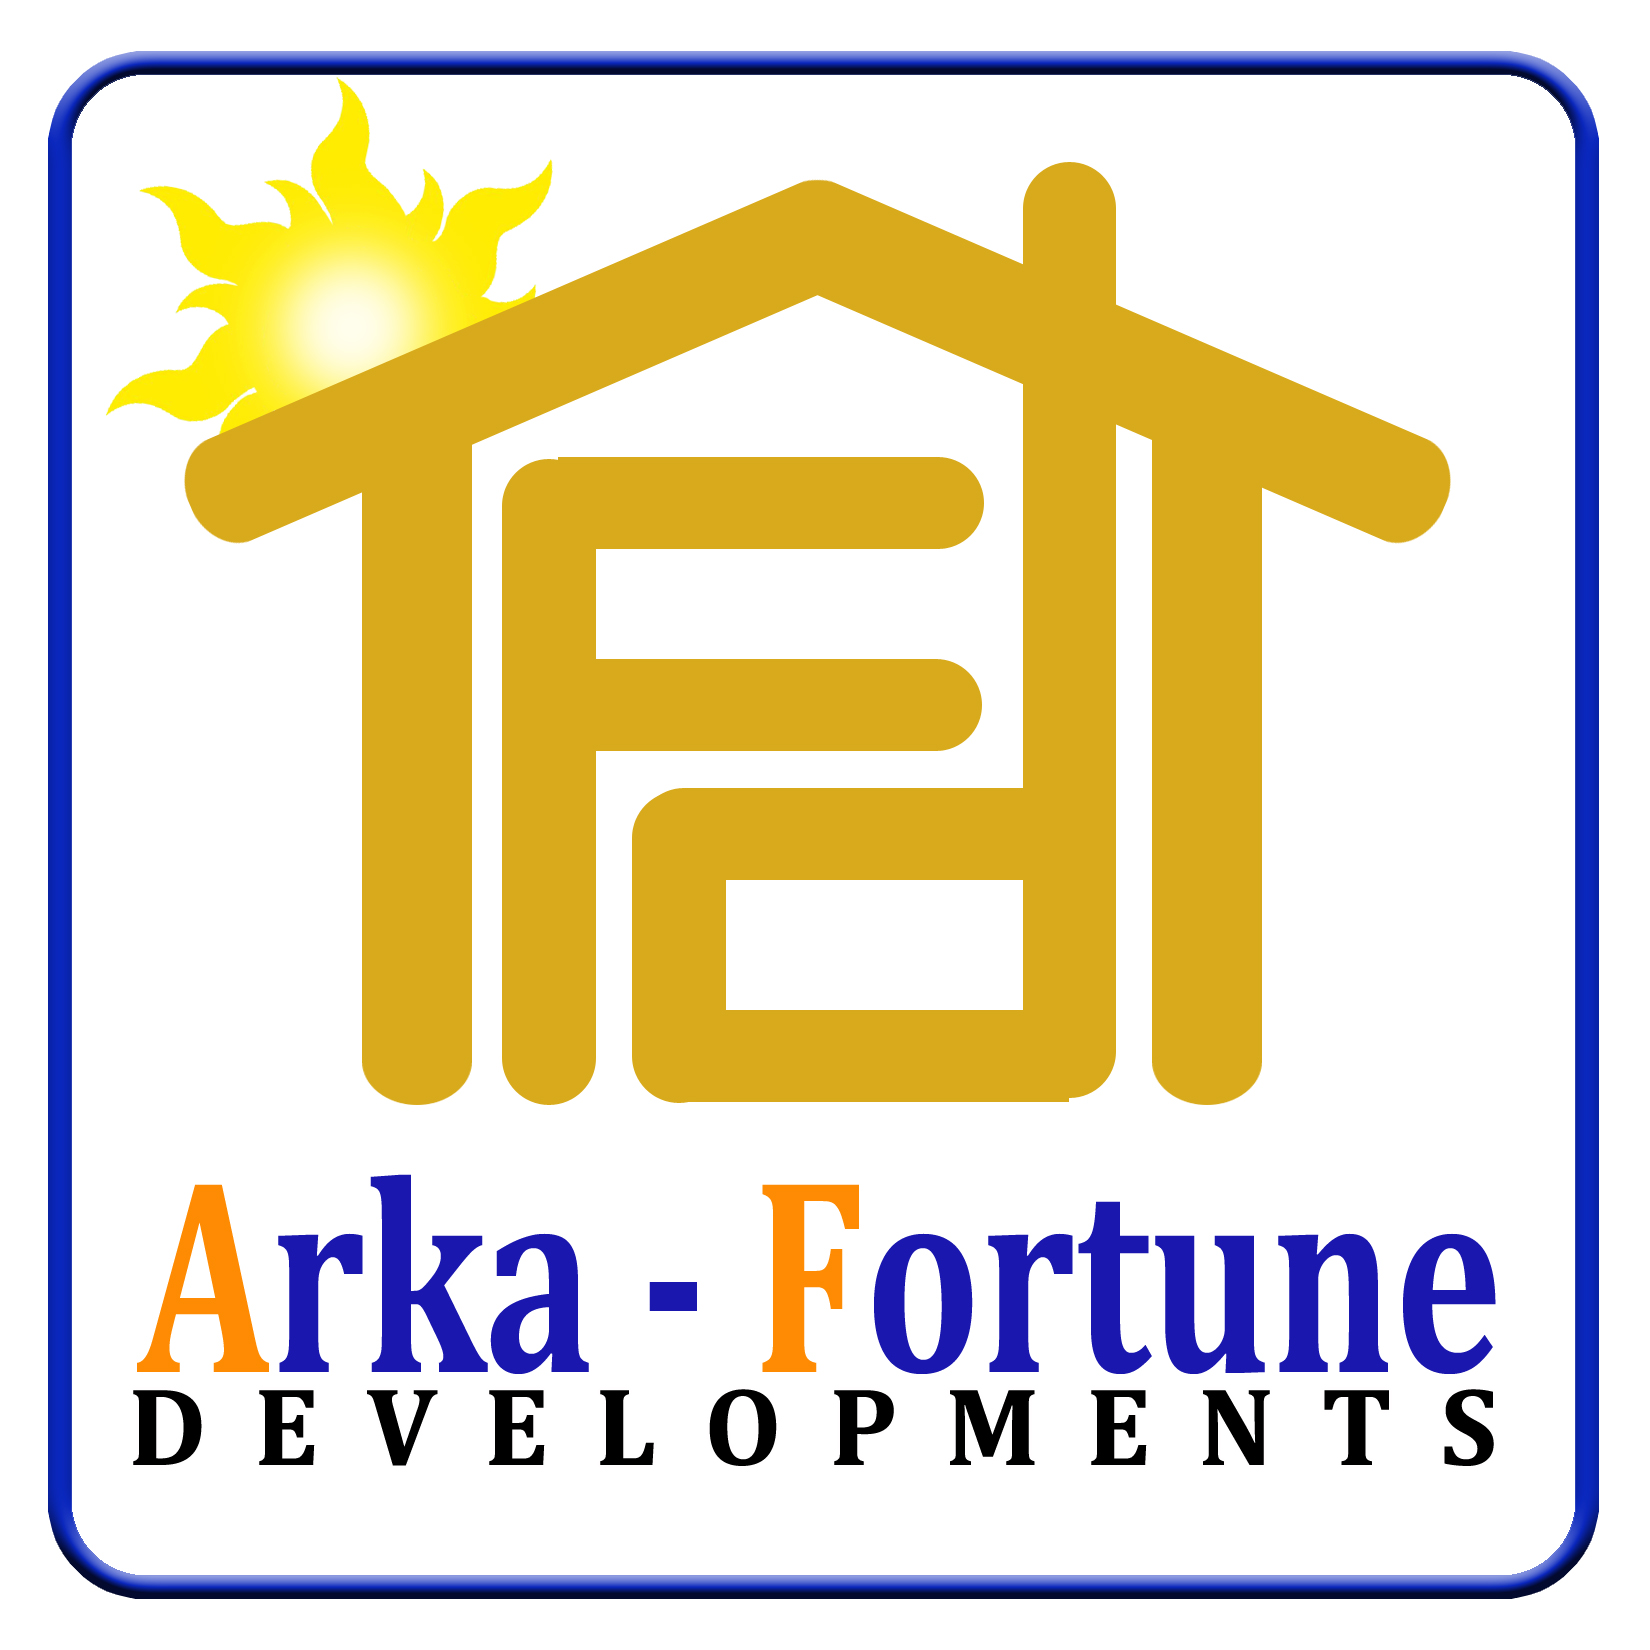 Logo Design by Kitz Malinao - Entry No. 35 in the Logo Design Contest Arka-Fortune Developments Logo Design.